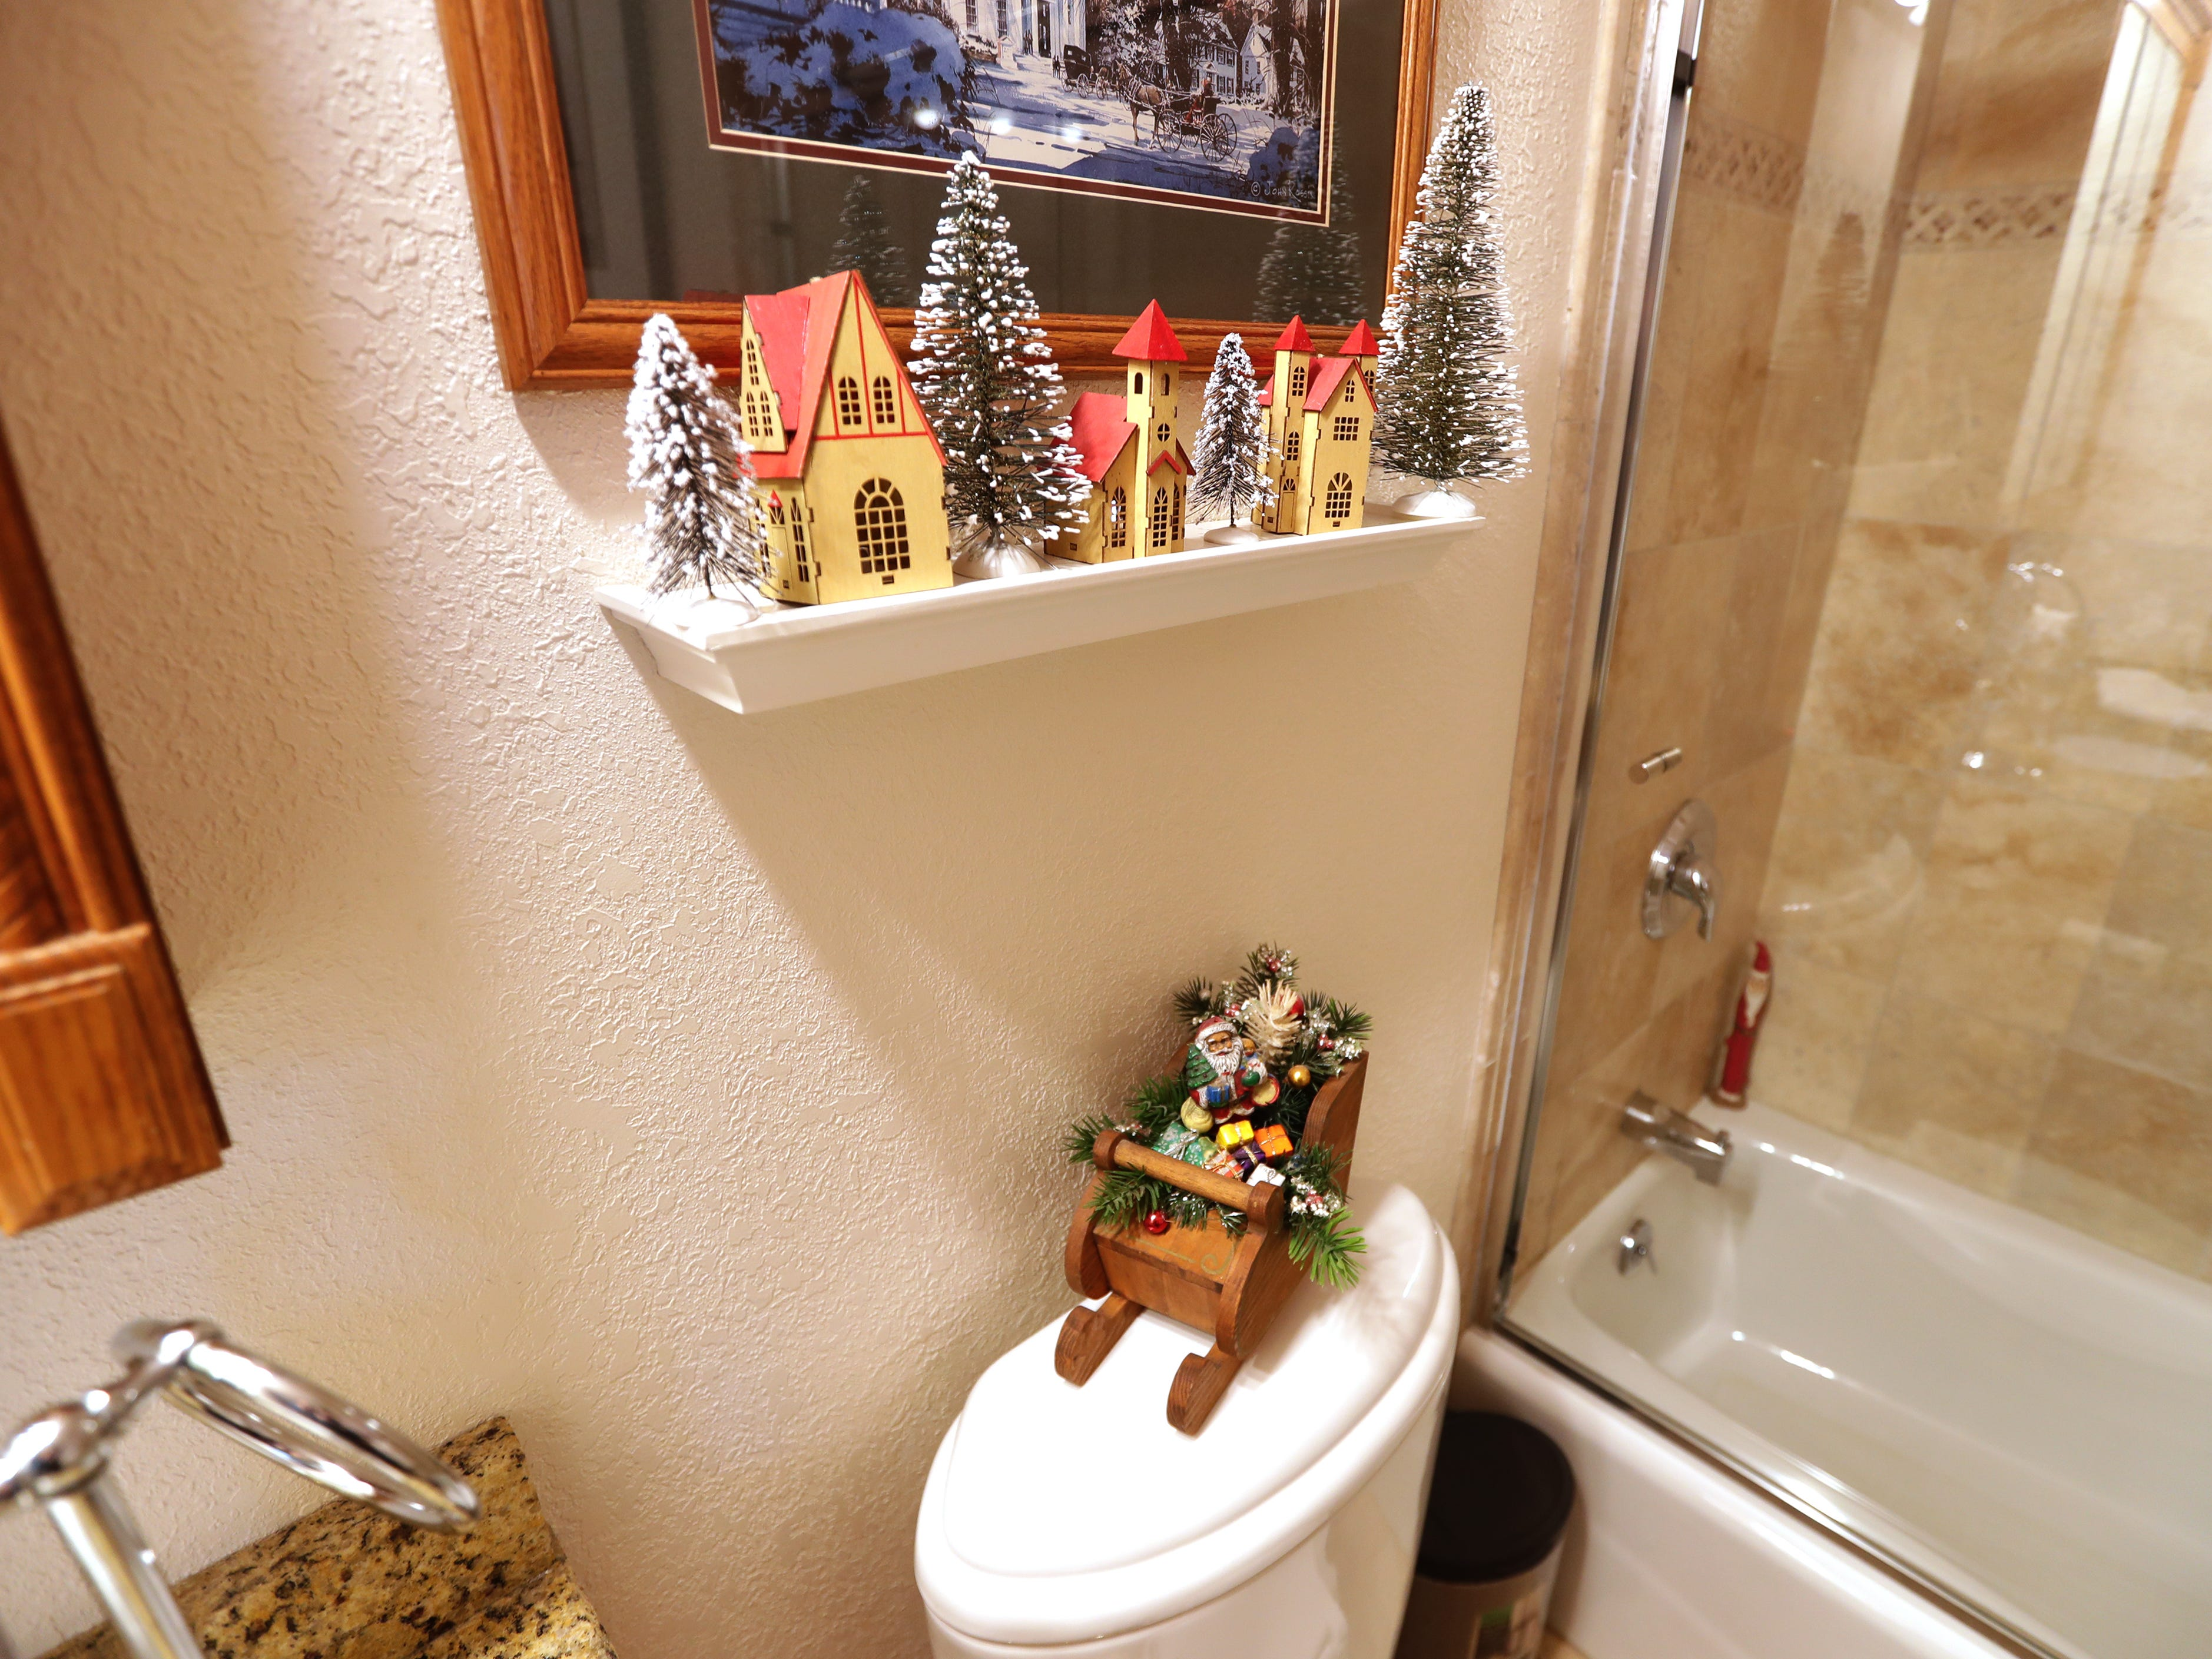 Even the guest bathroom is decked out for the holidays.